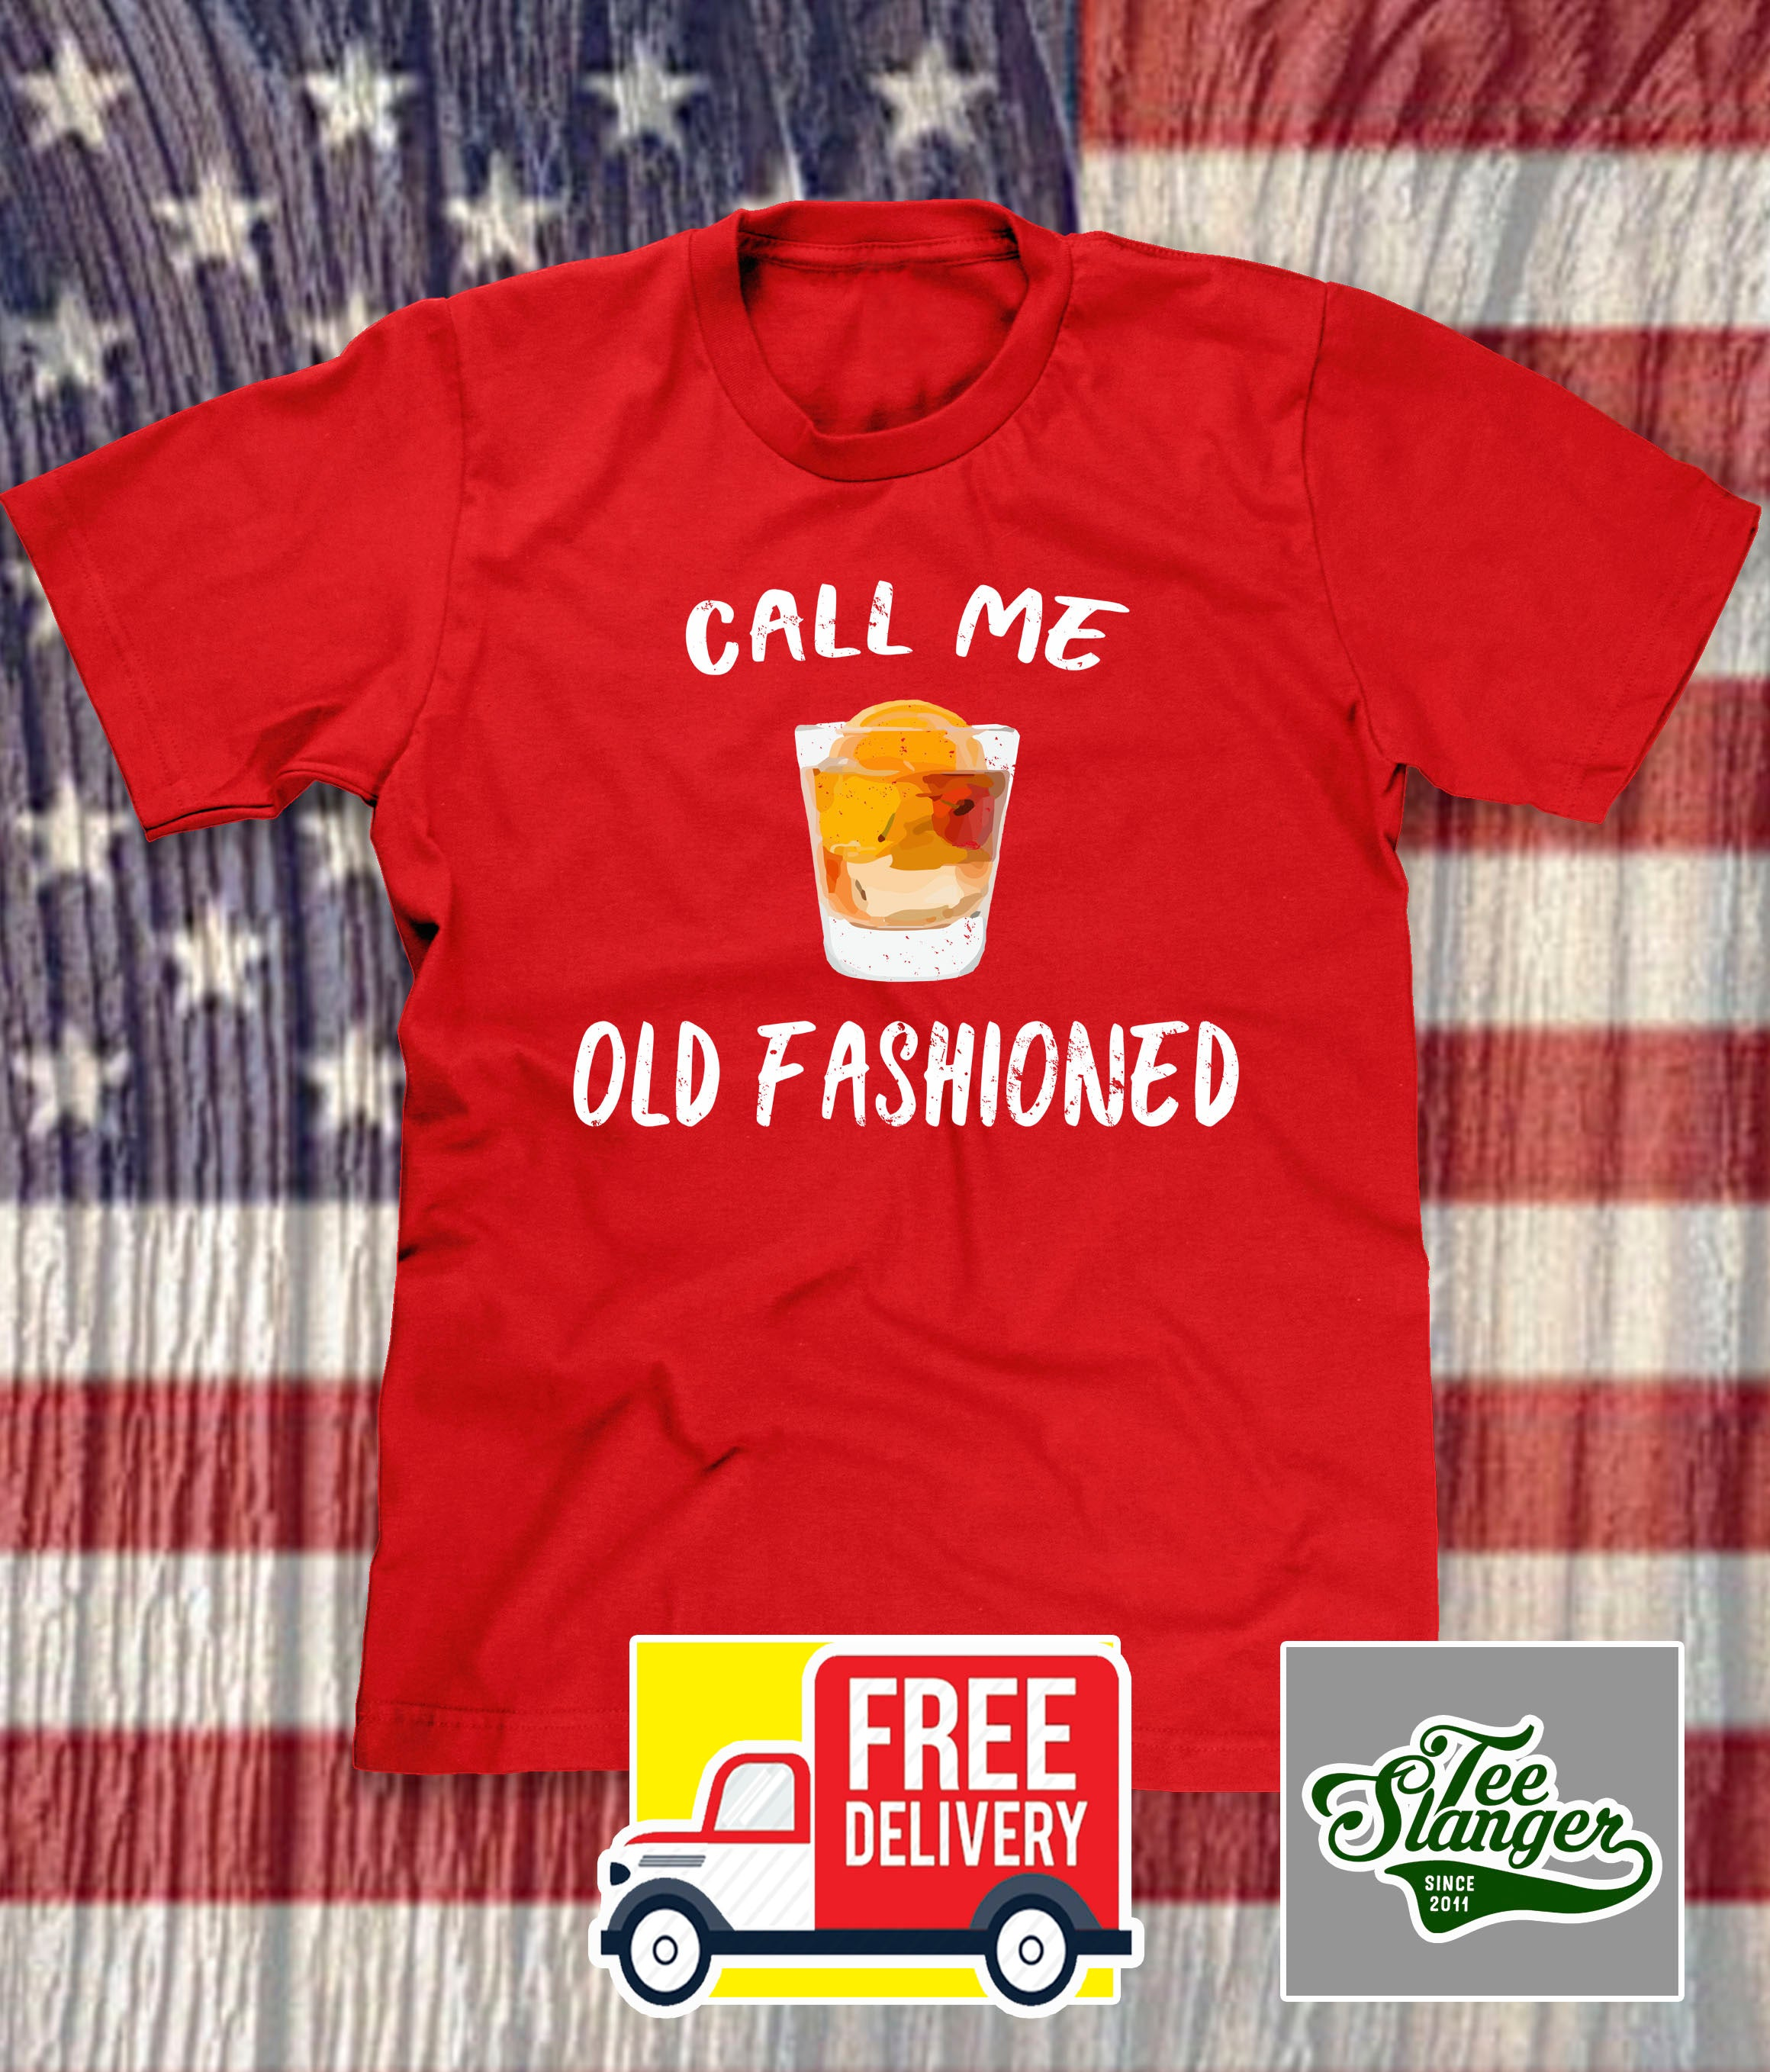 WISCONSIN CALL ME OLD FASHIONED T-SHIRT